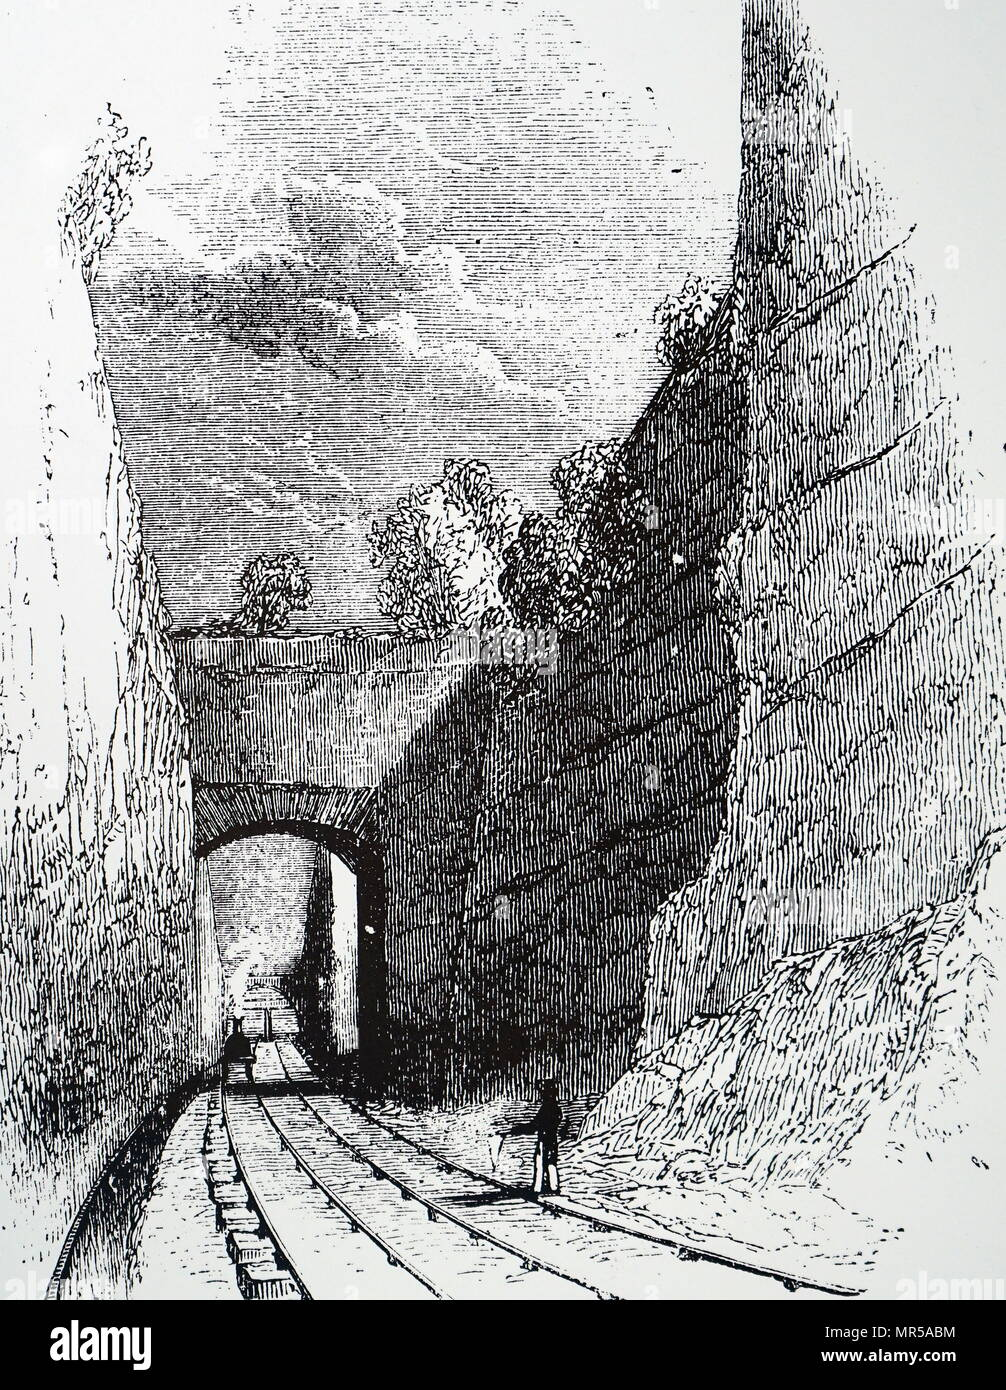 Engraving depicting the Olive Mount cutting, a 2 miles sandstone railway cutting, 4 miles from Liverpool, along the railway to Manchester, which was opened in 1830. Dated 19th century - Stock Image